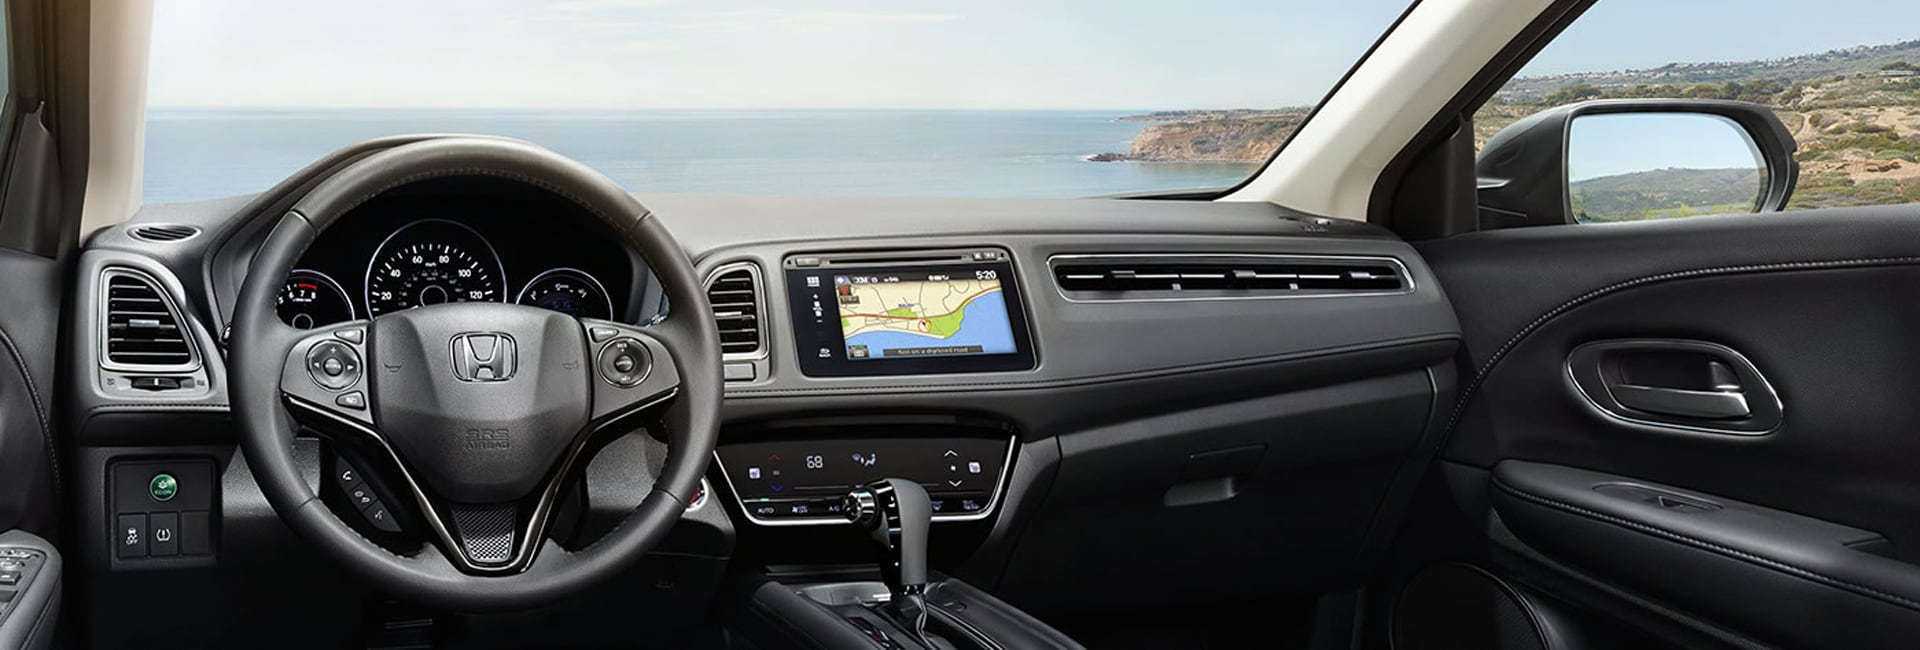 2019 Honda HR-V Interior Features